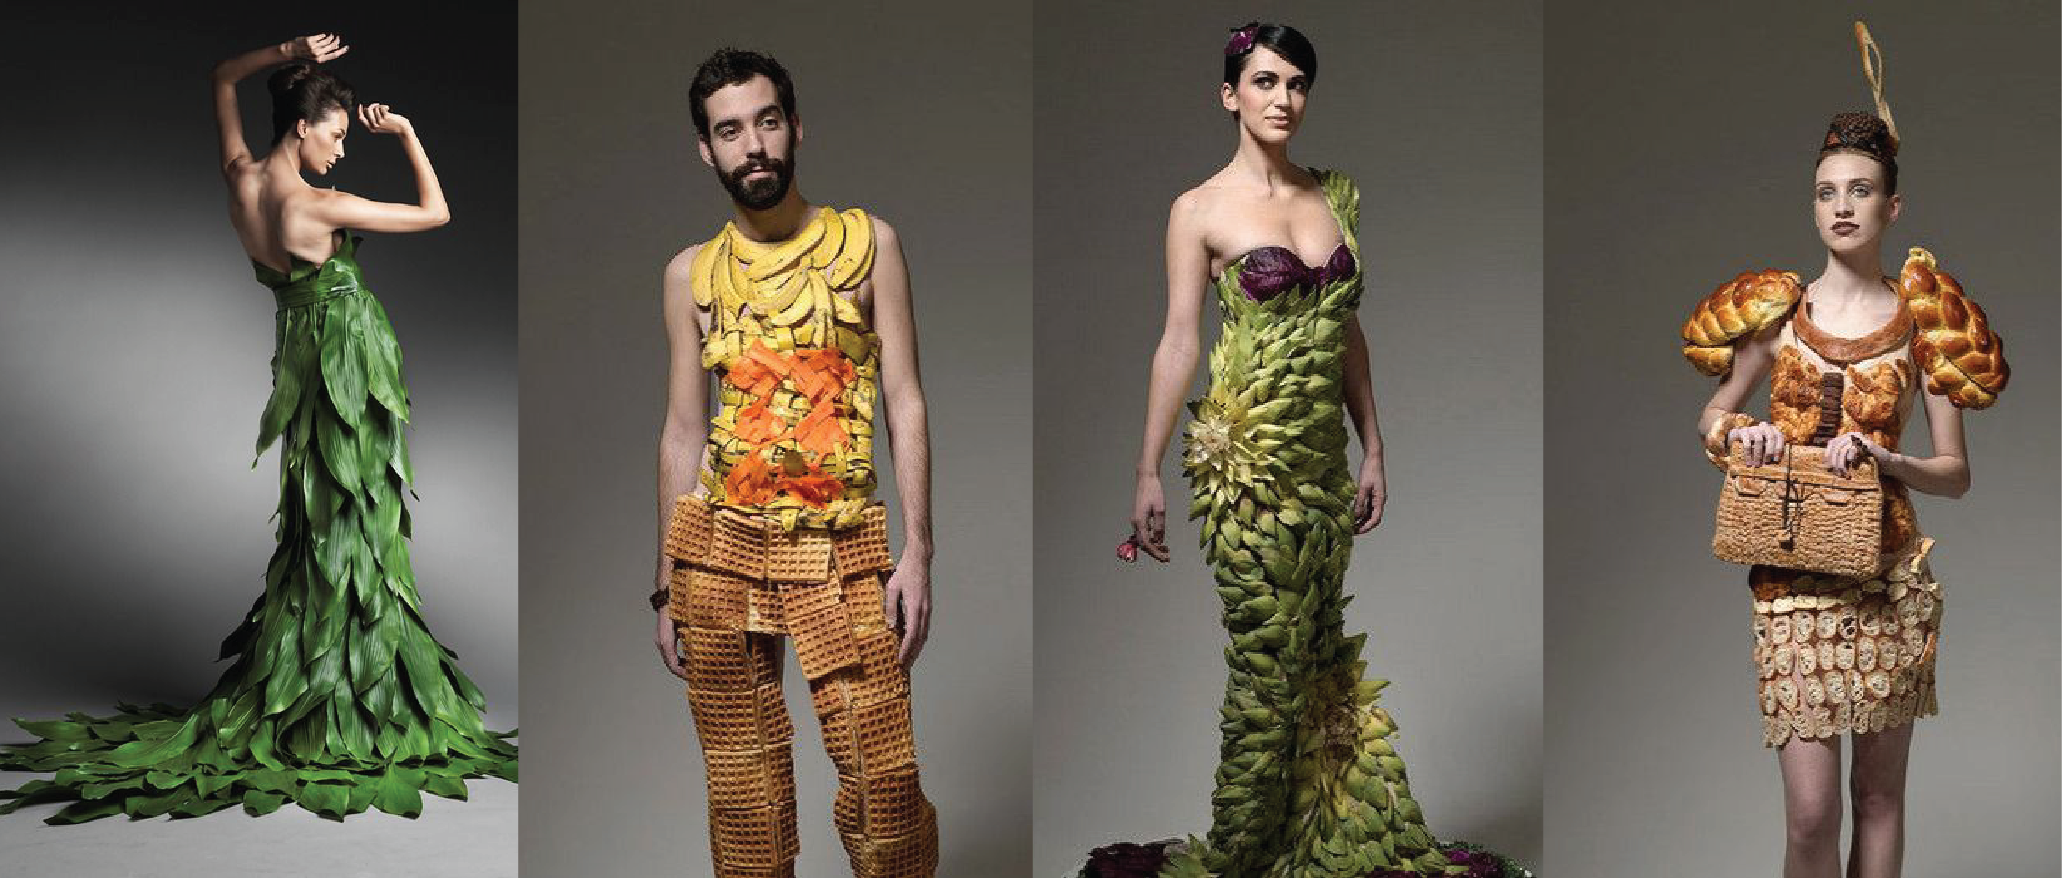 Are We Heading The Agro Fashion Revolution Re Fream